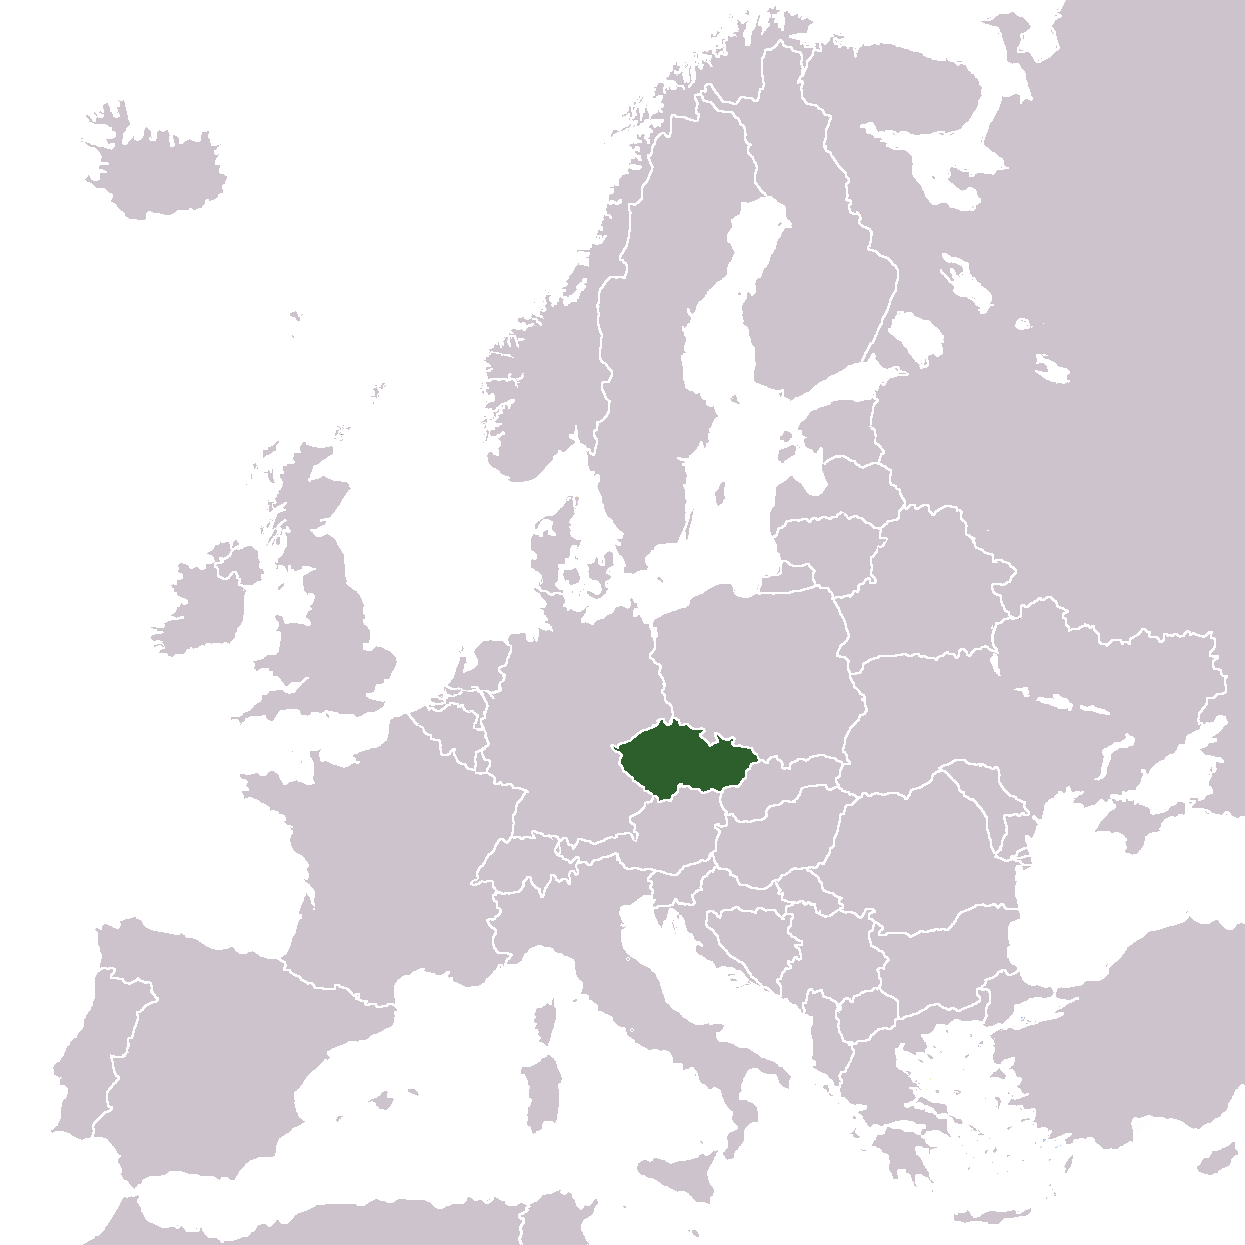 Europe Location Cz Mapsofnet